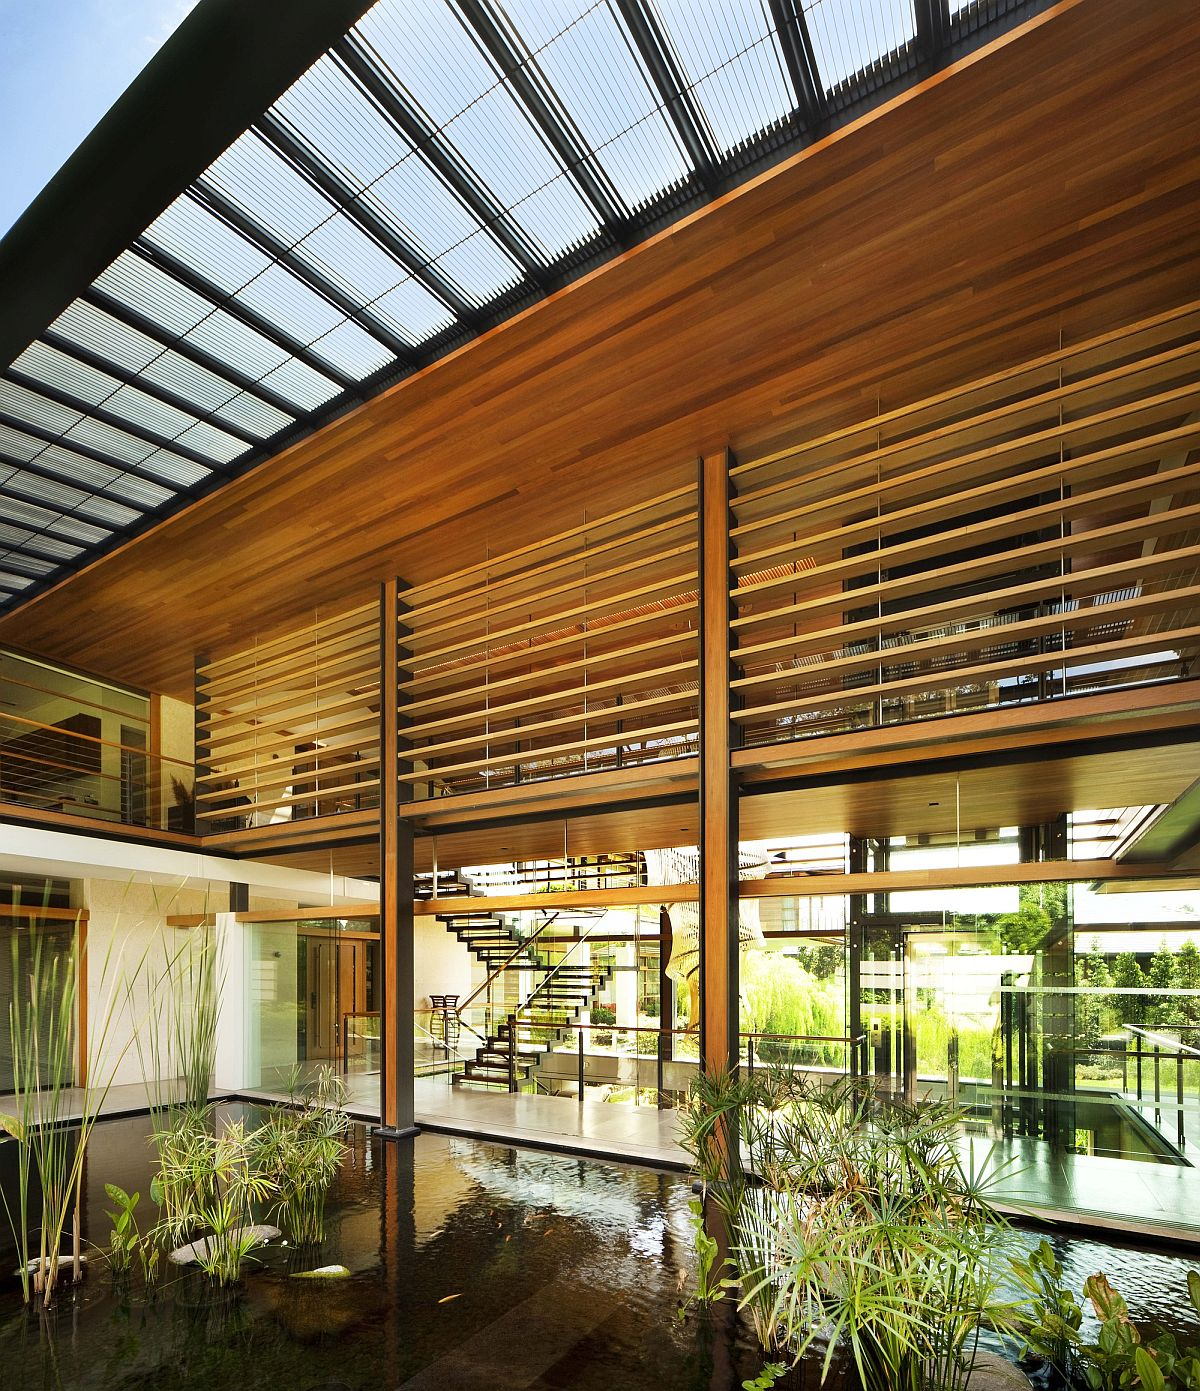 Landscaped-ponds-and-courtyards-combine-nature-with-modernity-inside-the-home-48705